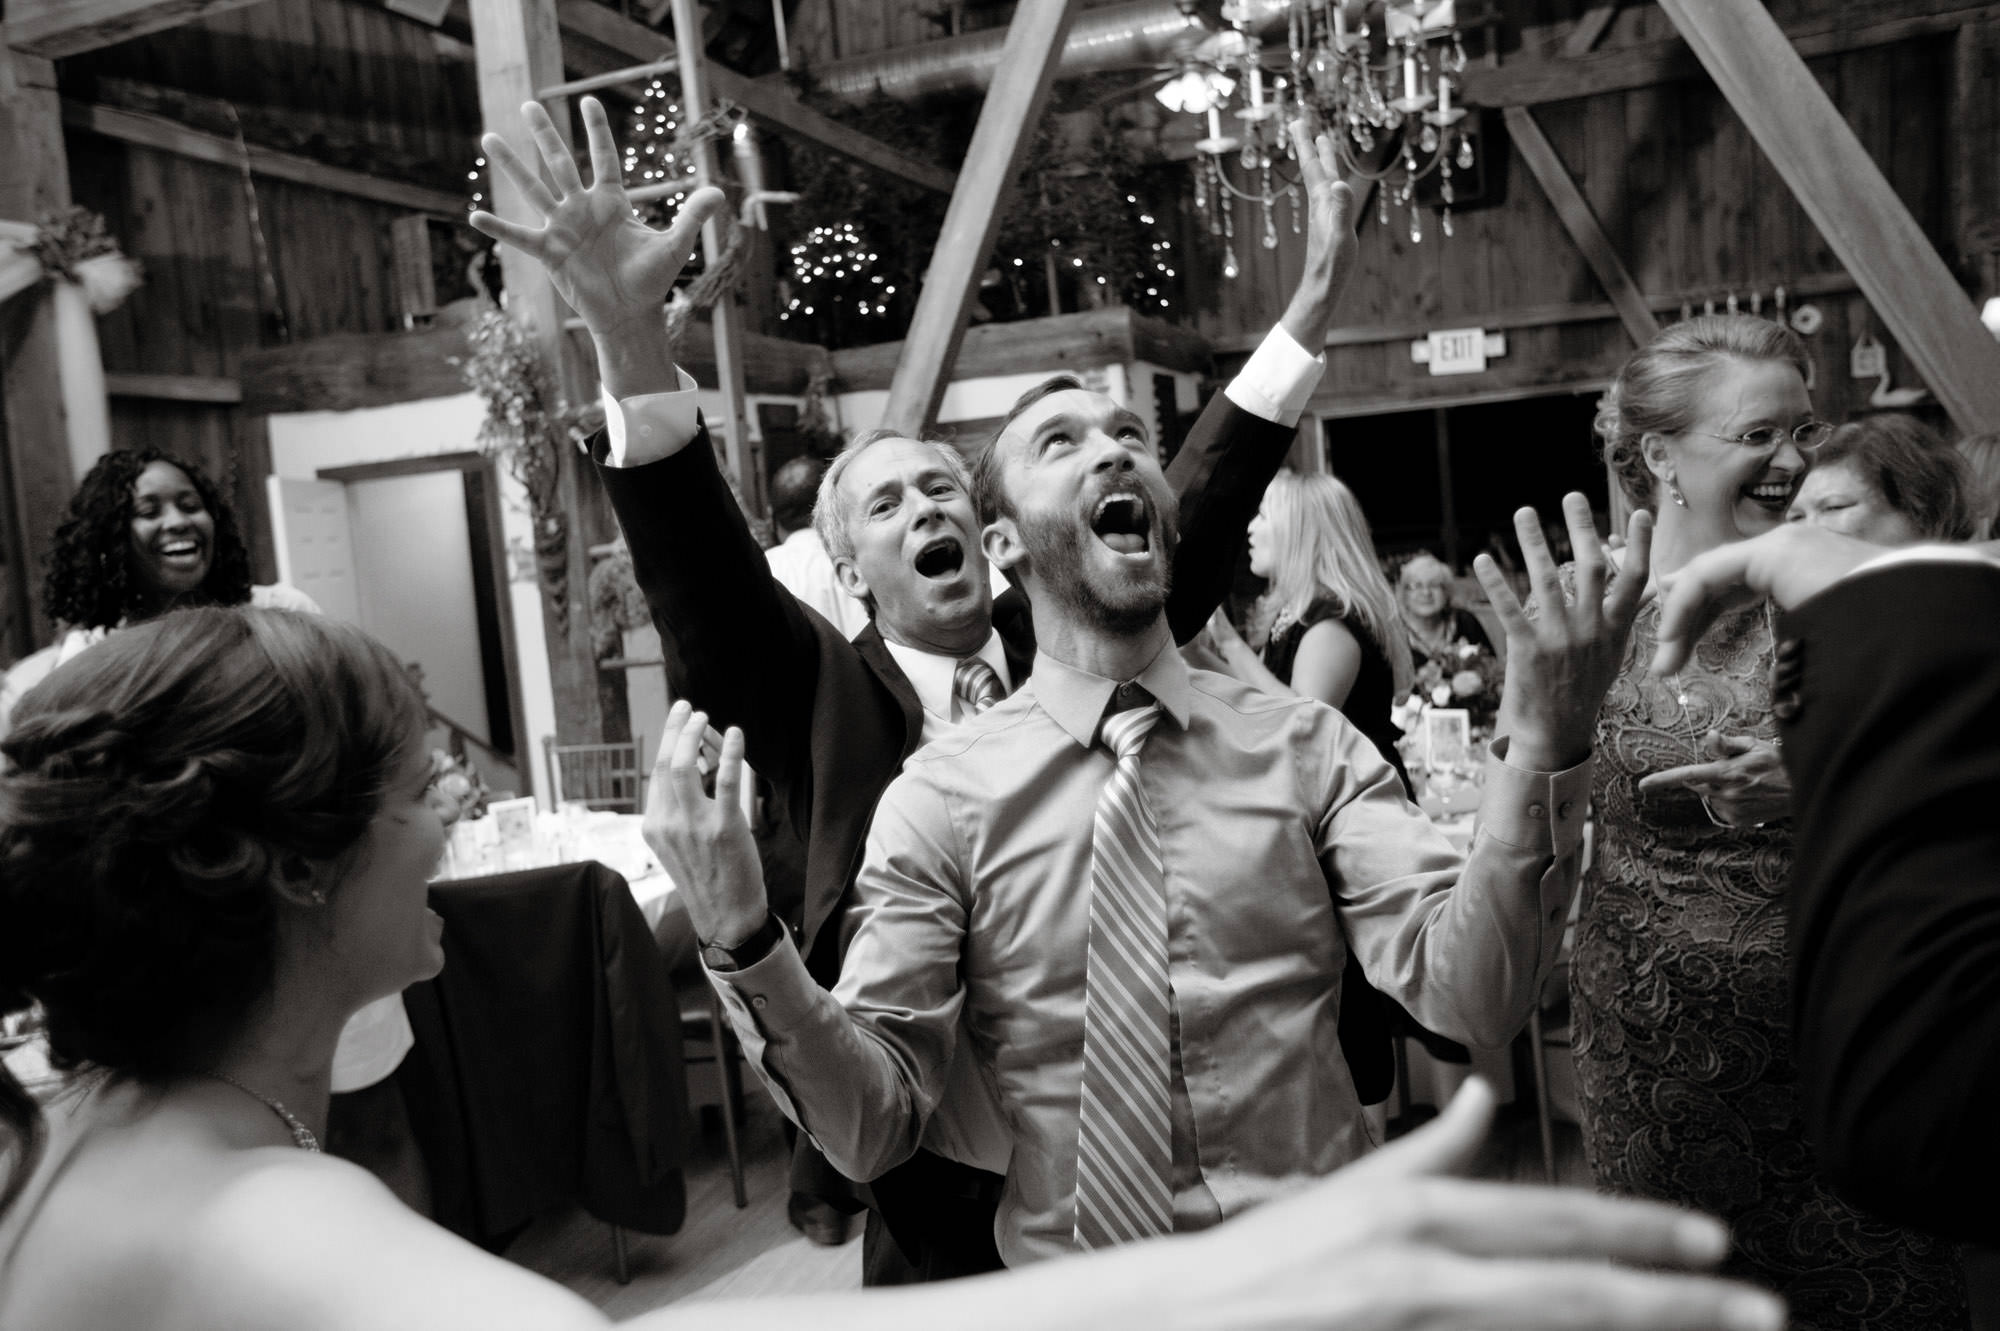 Guests dance during this Chanteclaire Farm Wedding.